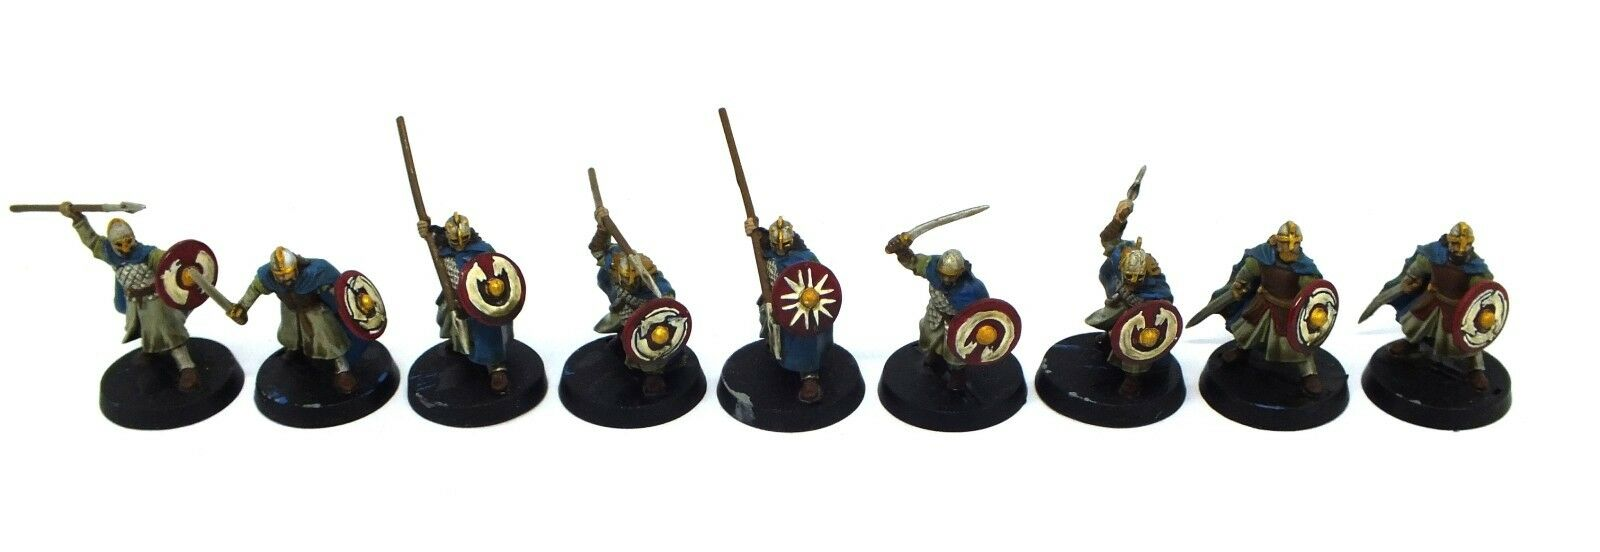 The Lord of the Anneaux - Warriors of Rohan (peint) - 28mm (modèl 1)